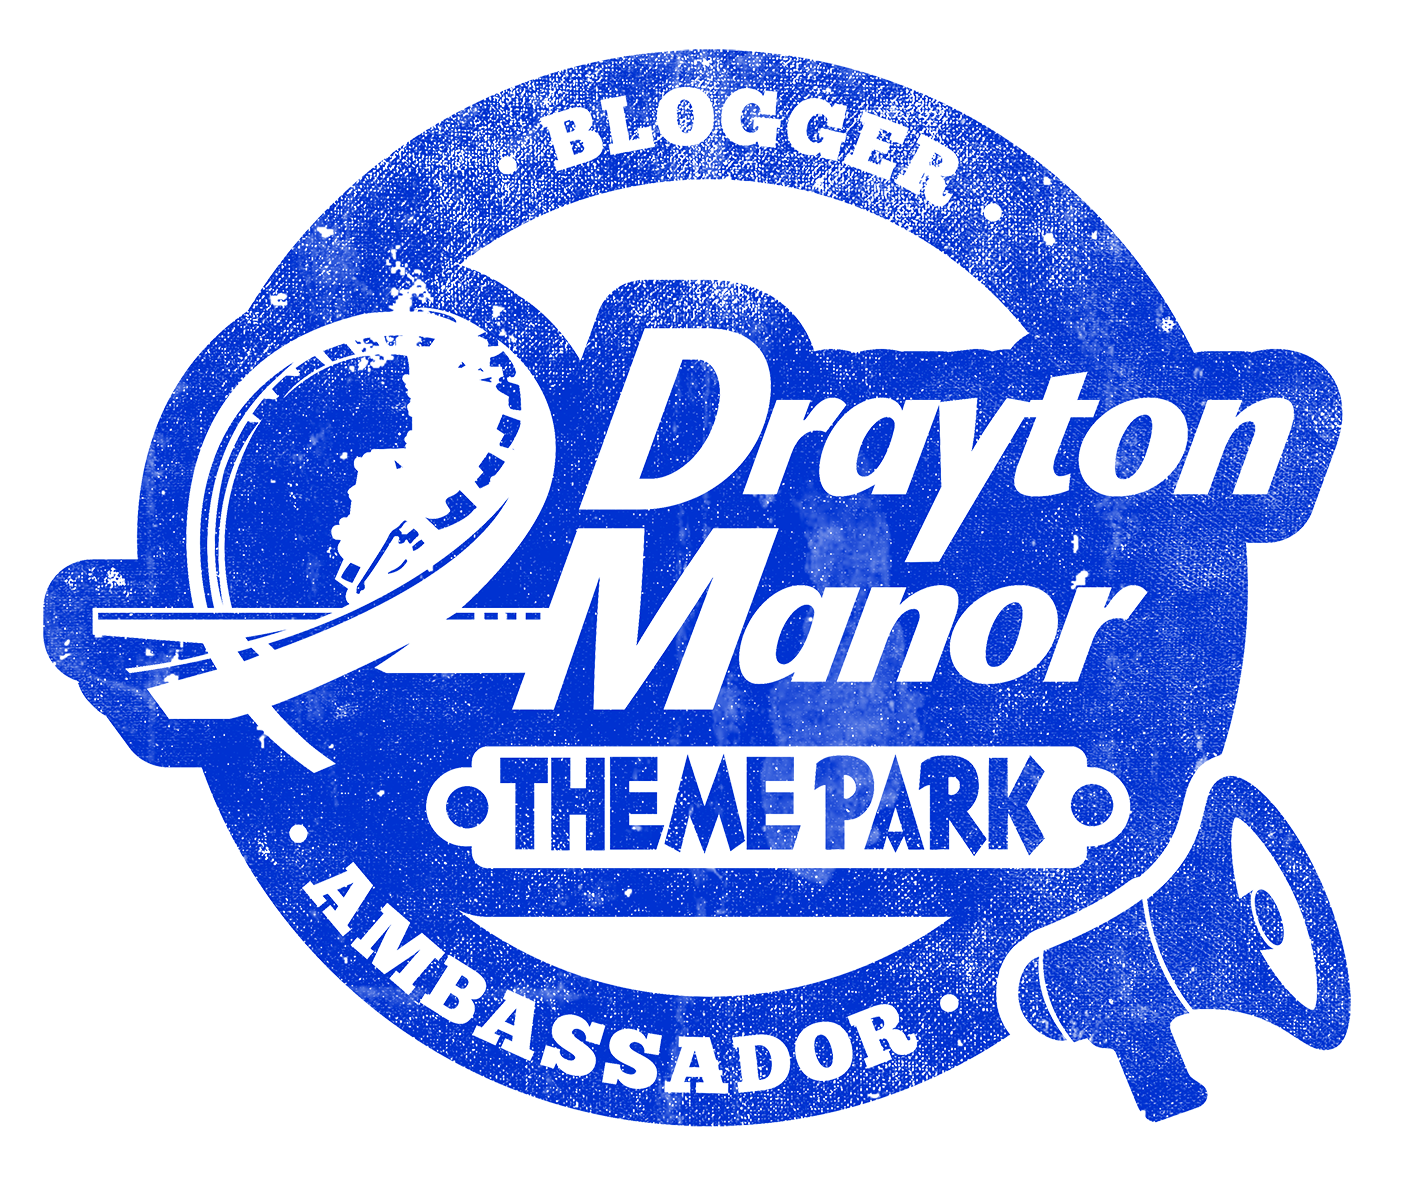 Proud to be a Blogger Ambassador